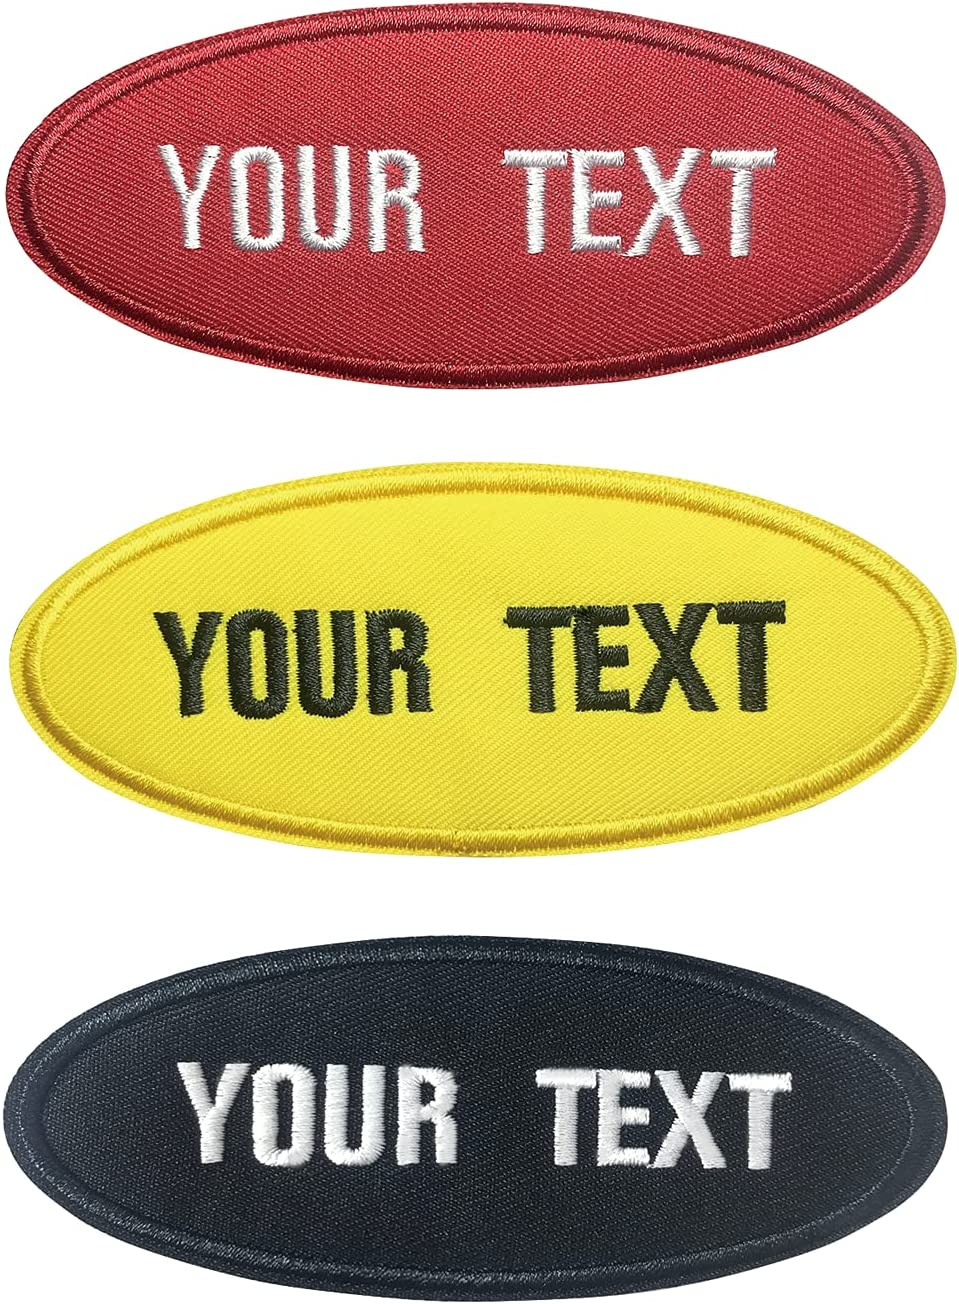 Sale special price MVCEN Custom Name Patches Personalized 2 Pieces T Super-cheap Oval